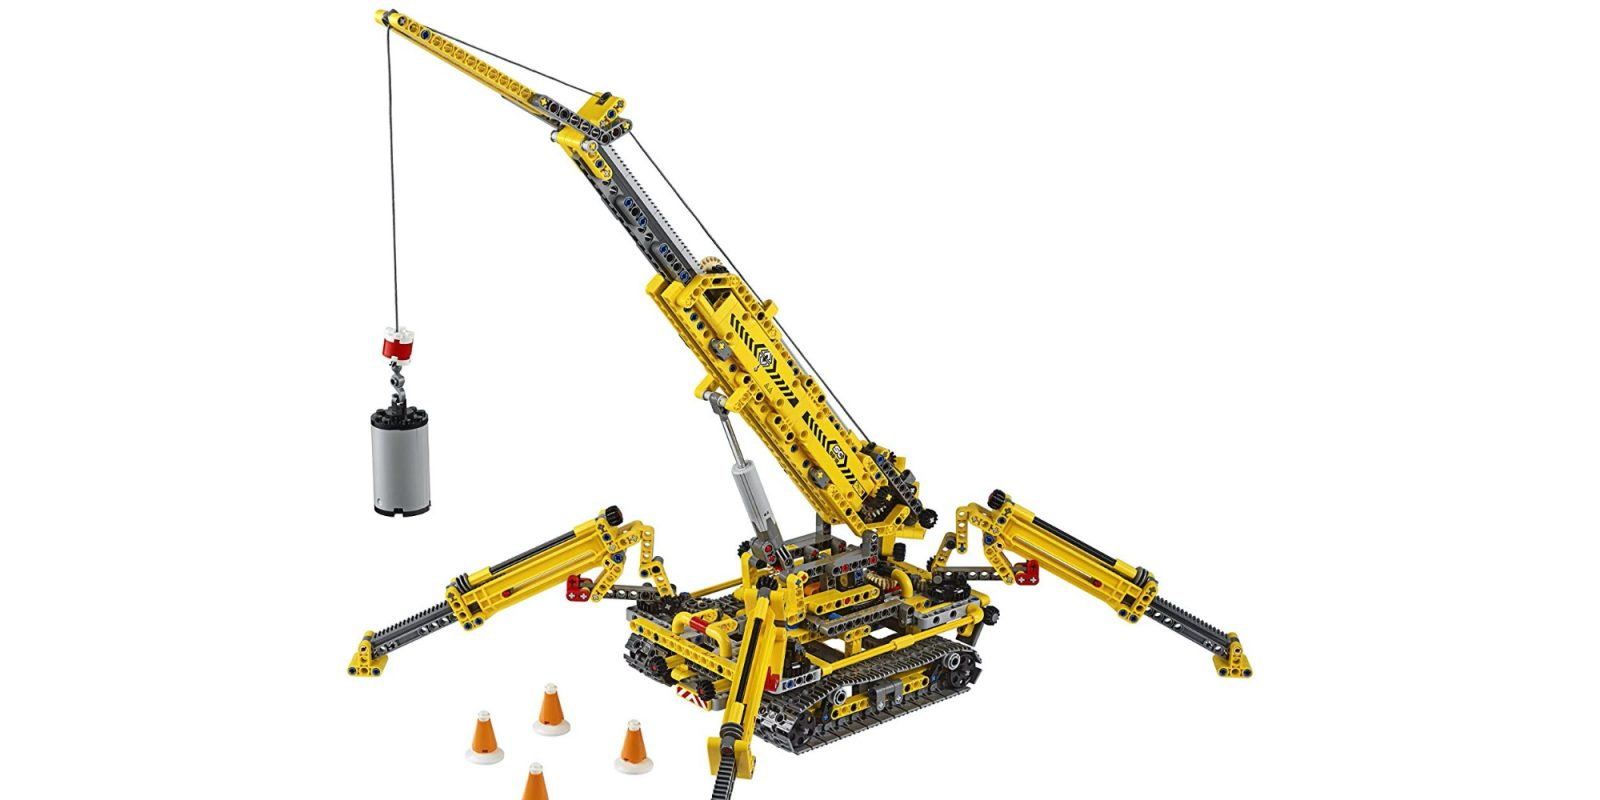 LEGO's Technic Crawler Crane measures 20-inches long at $80 (New low, 20% off)